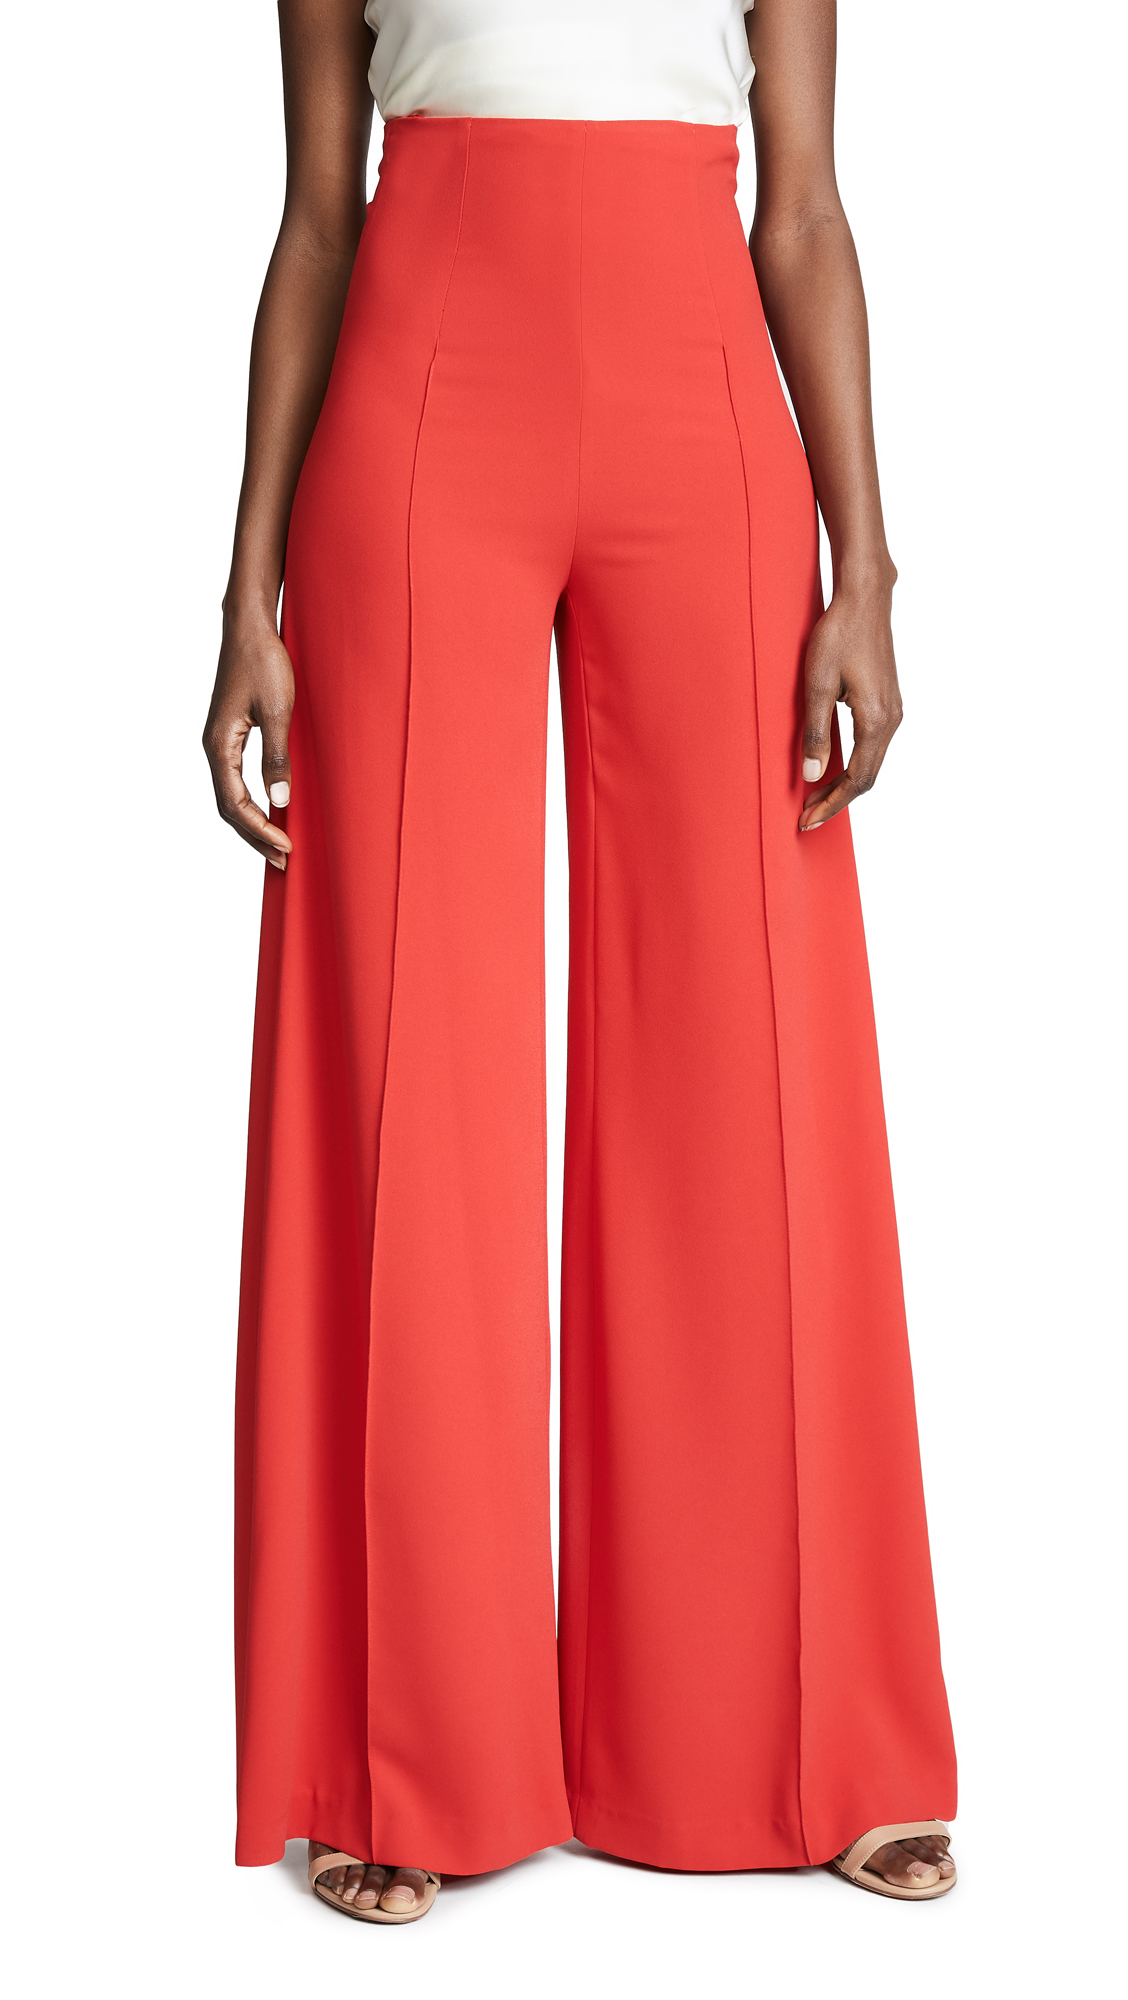 COSTARELLOS High Waist Wide Leg Trousers in Red